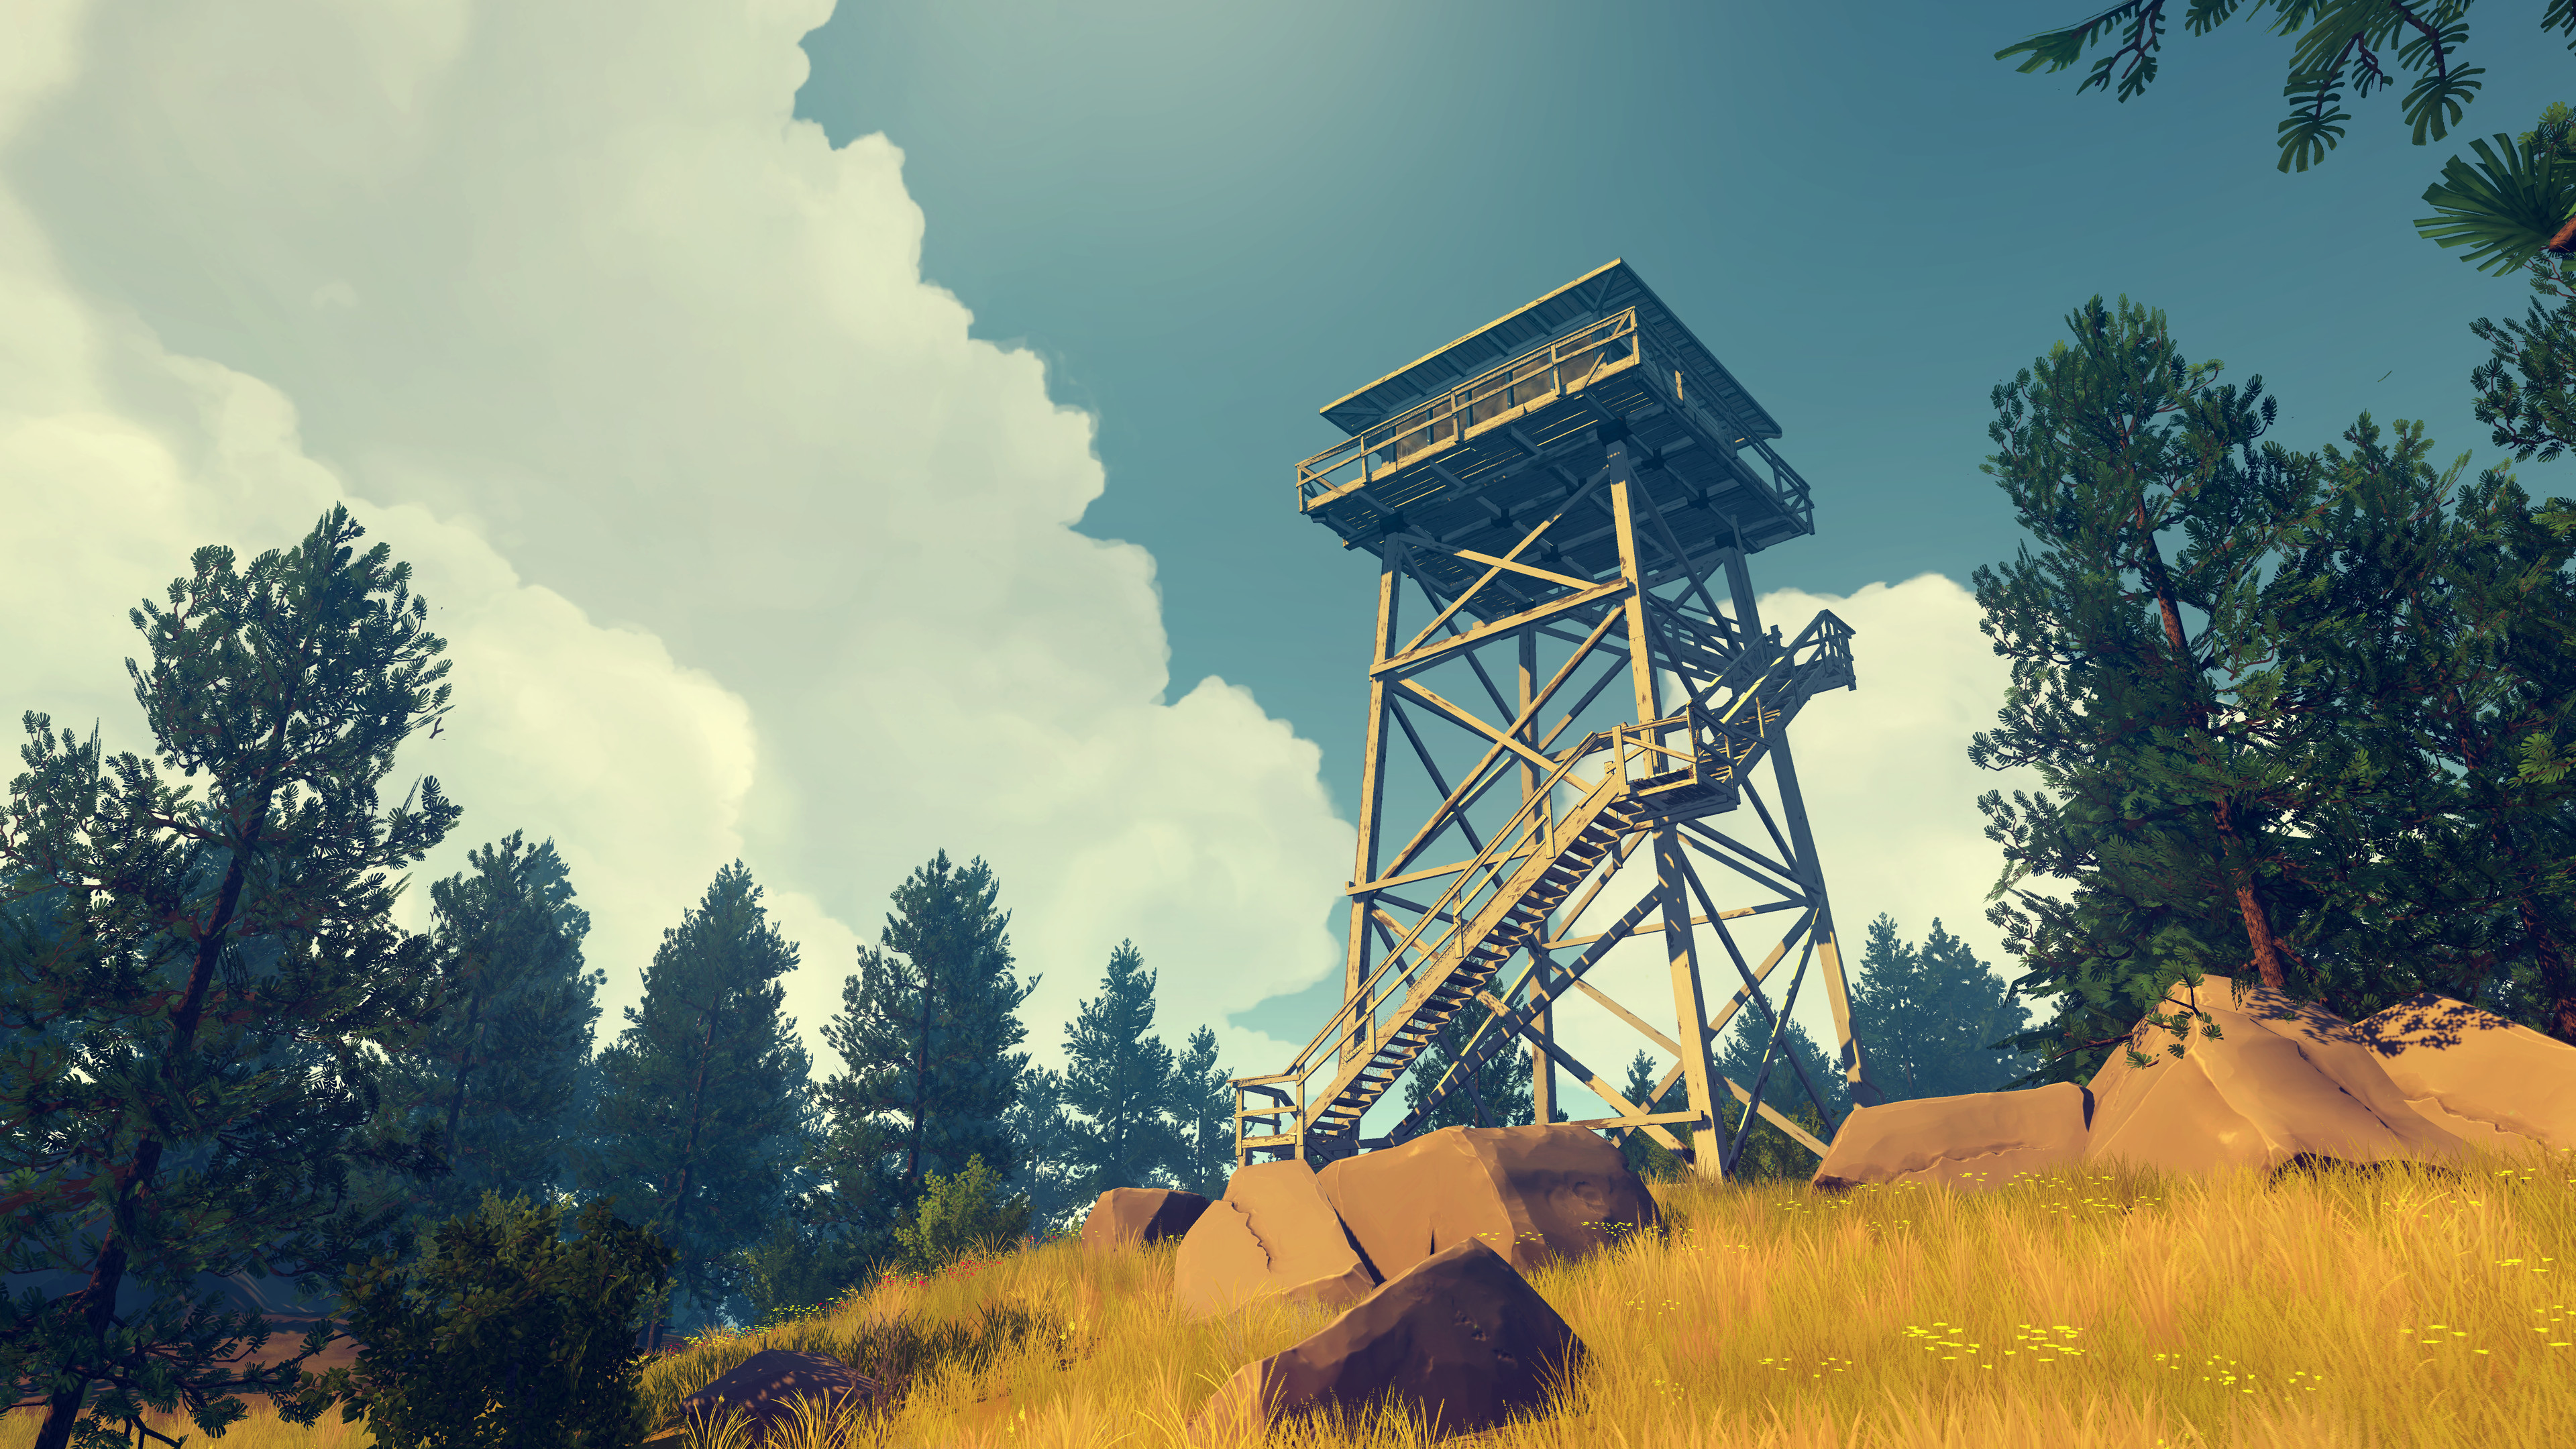 Firewatch screenshot2 on PCGamesCDN you can download cracked unlocked full pc version game direct free download with mirrors and torrent.